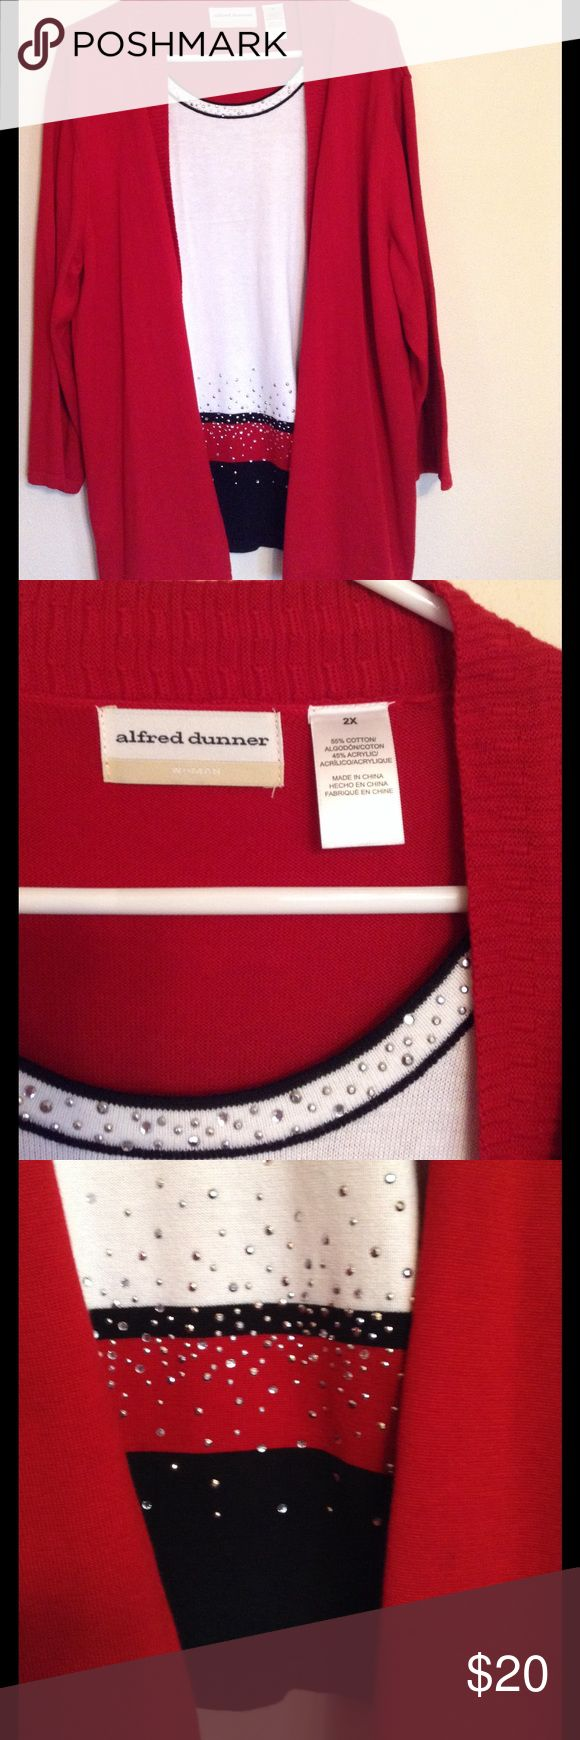 Alfred Dunner layered look sweater This sweater is attached but looks layered. Lots of  beautiful bling dress it up. Alfred Dunner Sweaters Crew & Scoop Necks